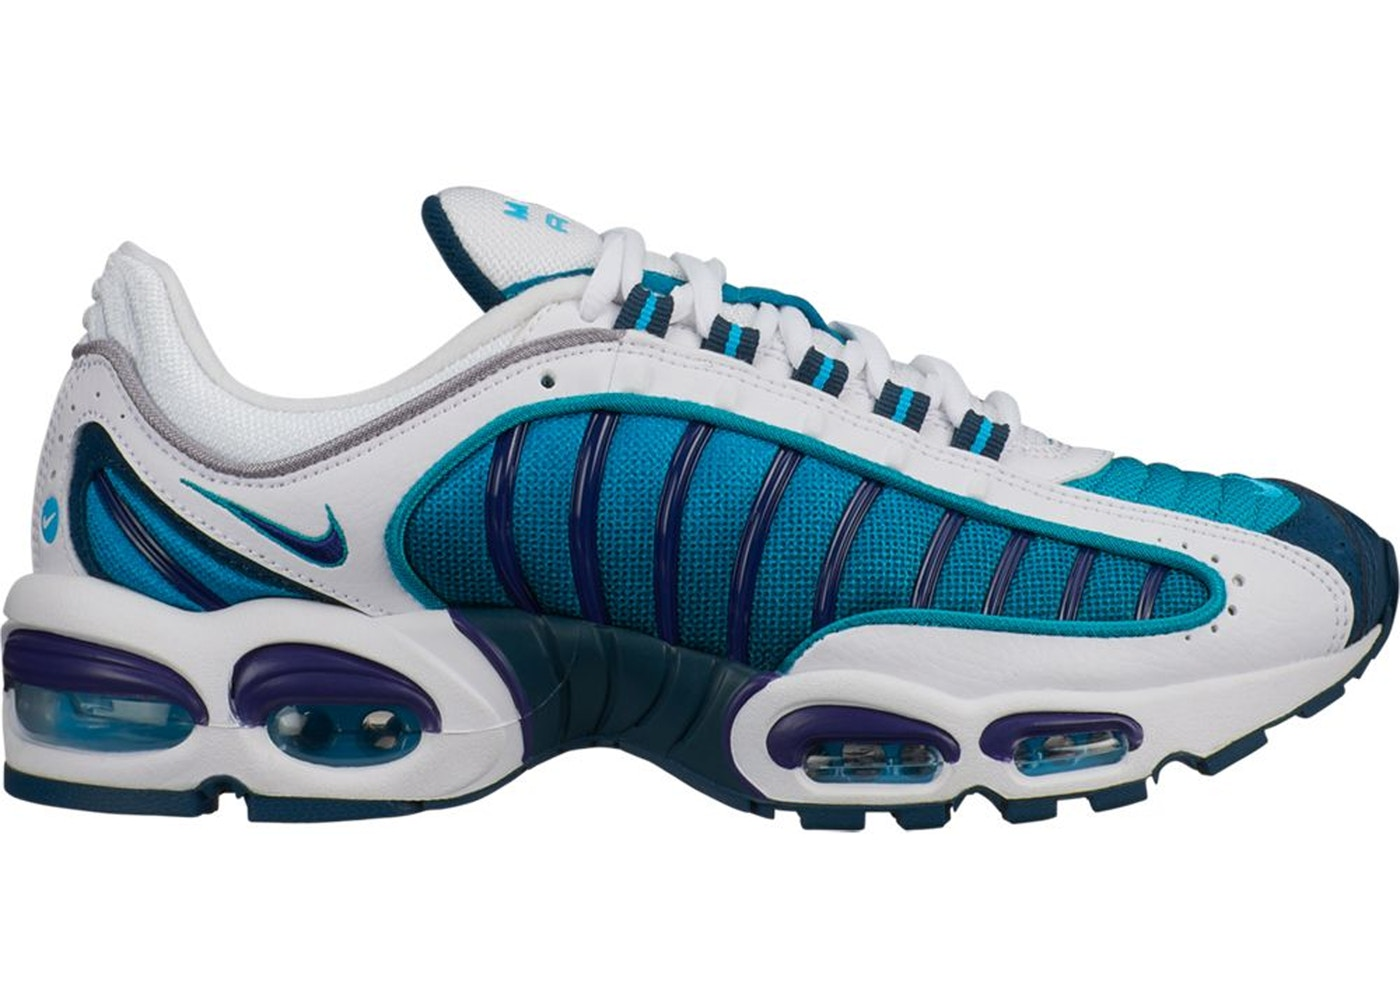 36f39187 Air Max Tailwind 4 White Regency Purple Spirit Teal - AQ2567-101